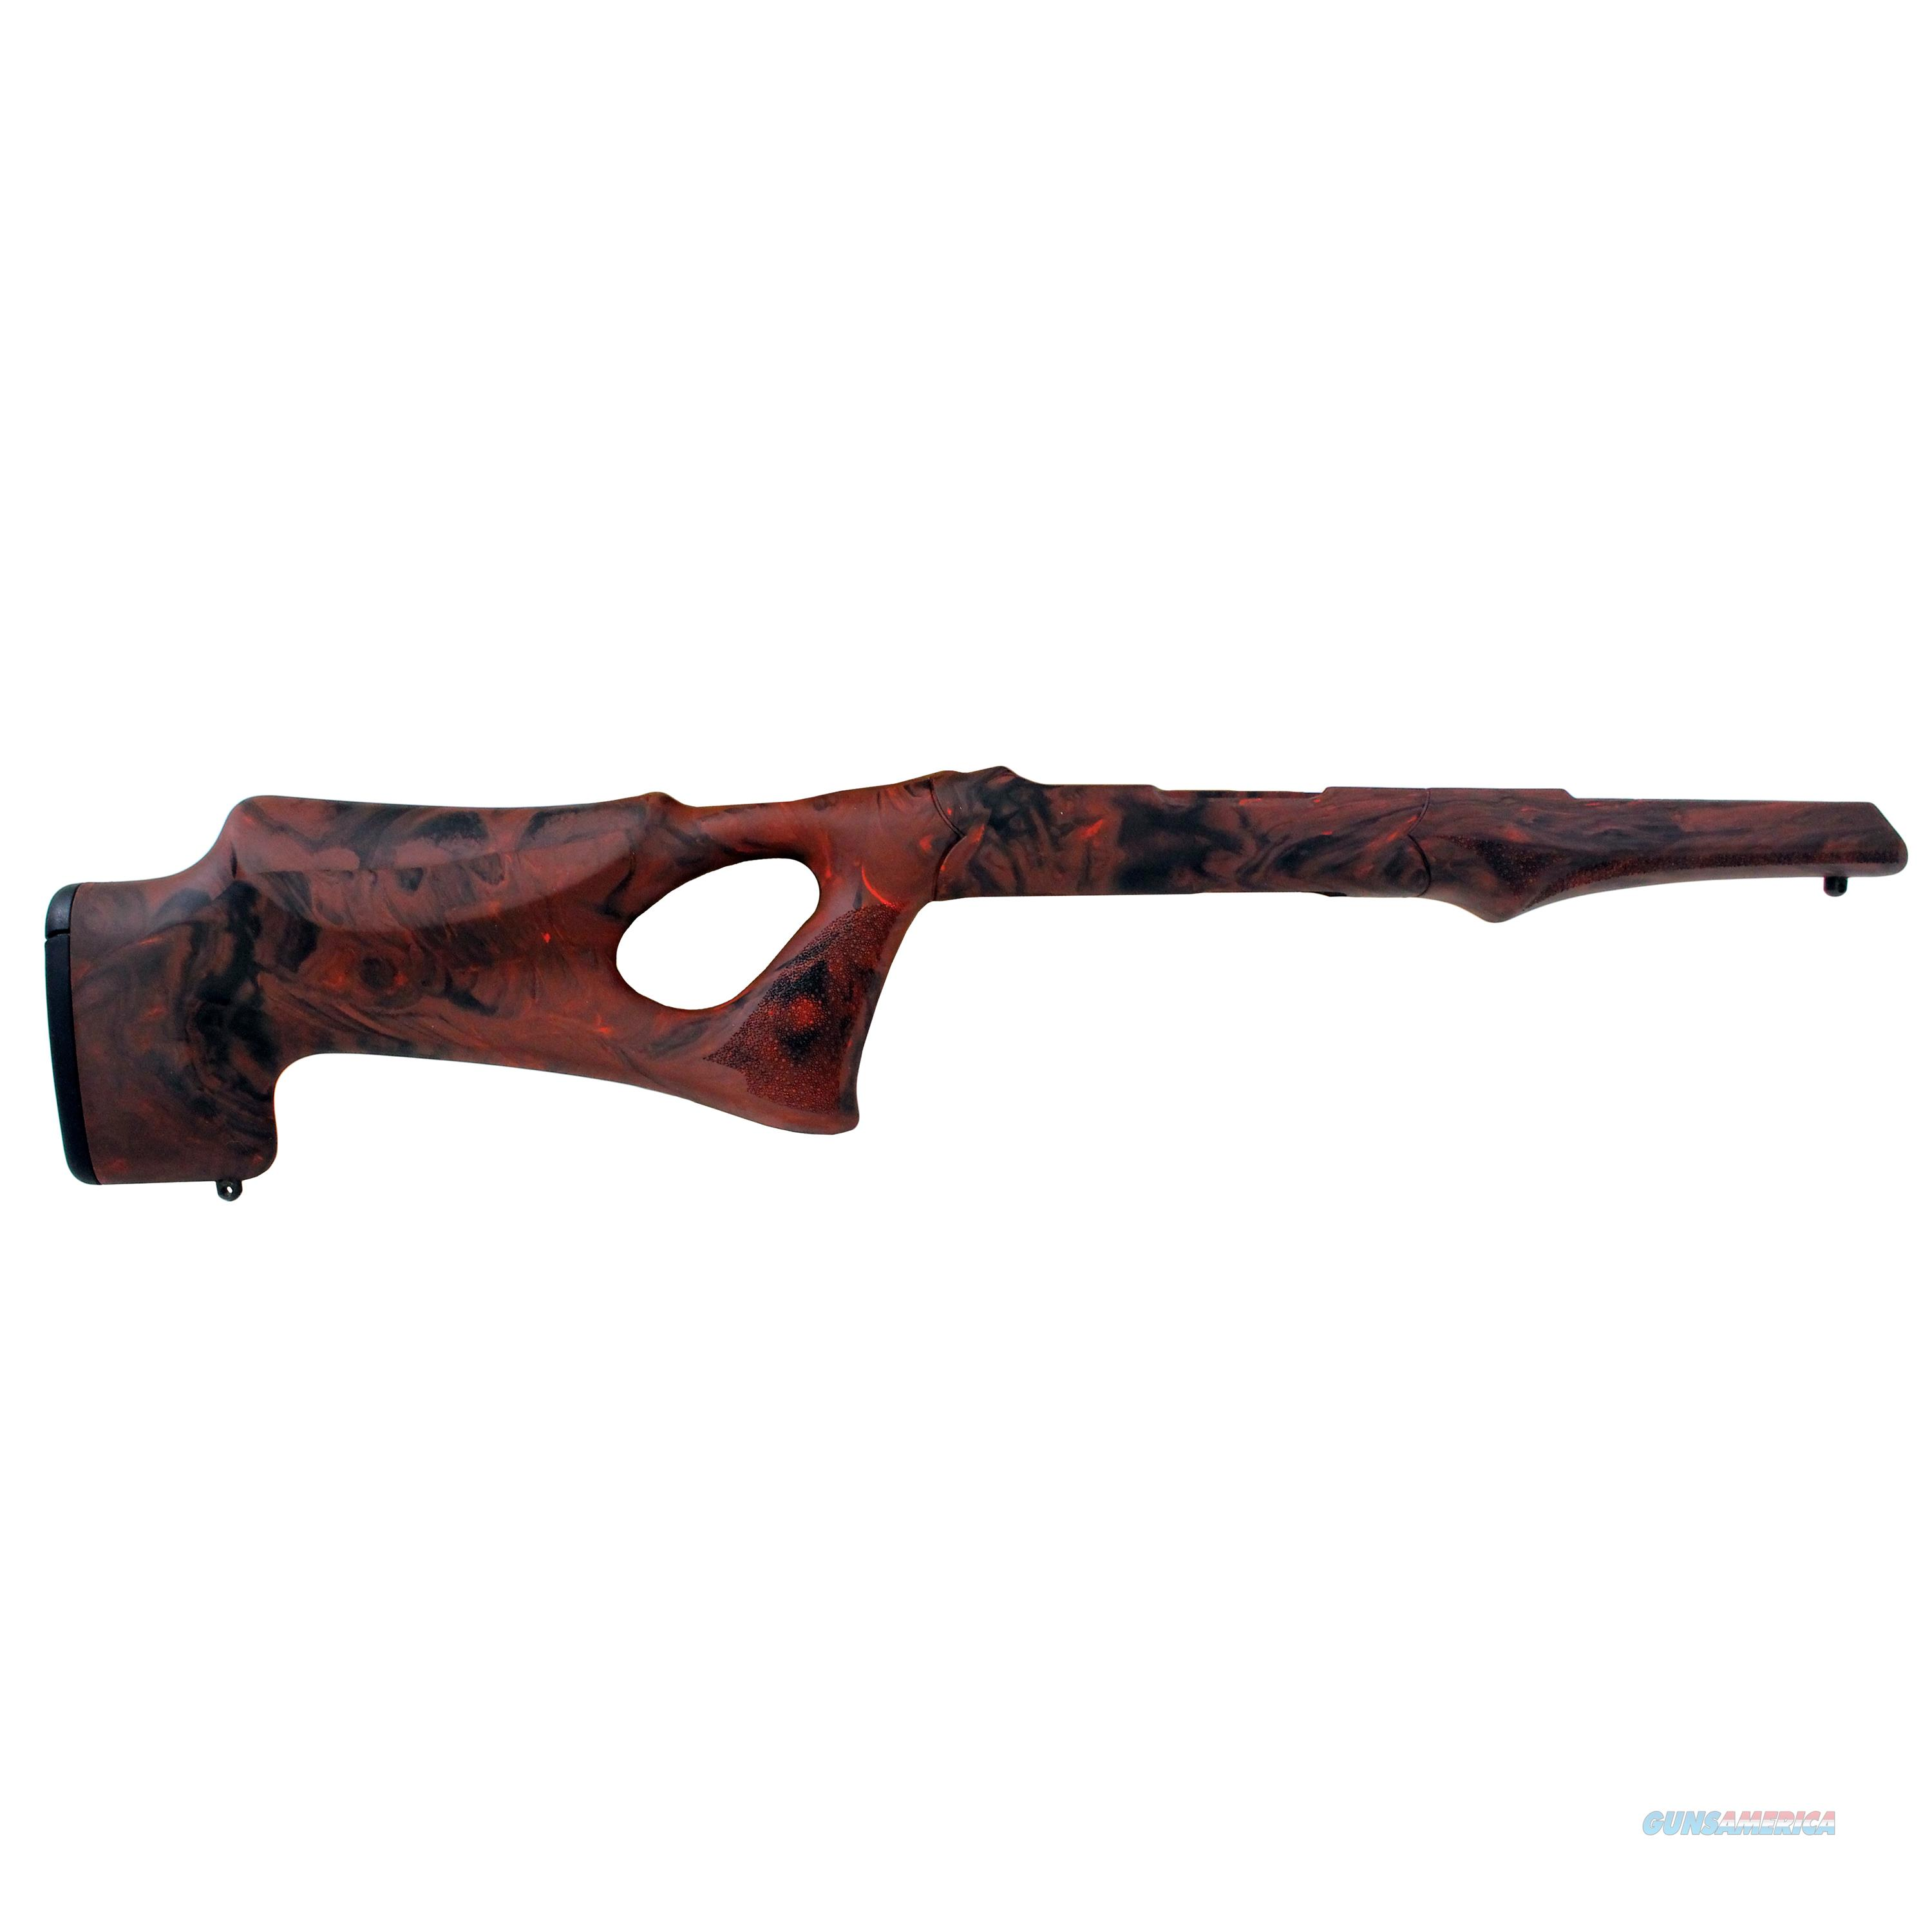 Hogue 10/22 Takedown Thumbhole Standard Barrel Rubber Overmolded Stock 21062  Non-Guns > Gunstocks, Grips & Wood